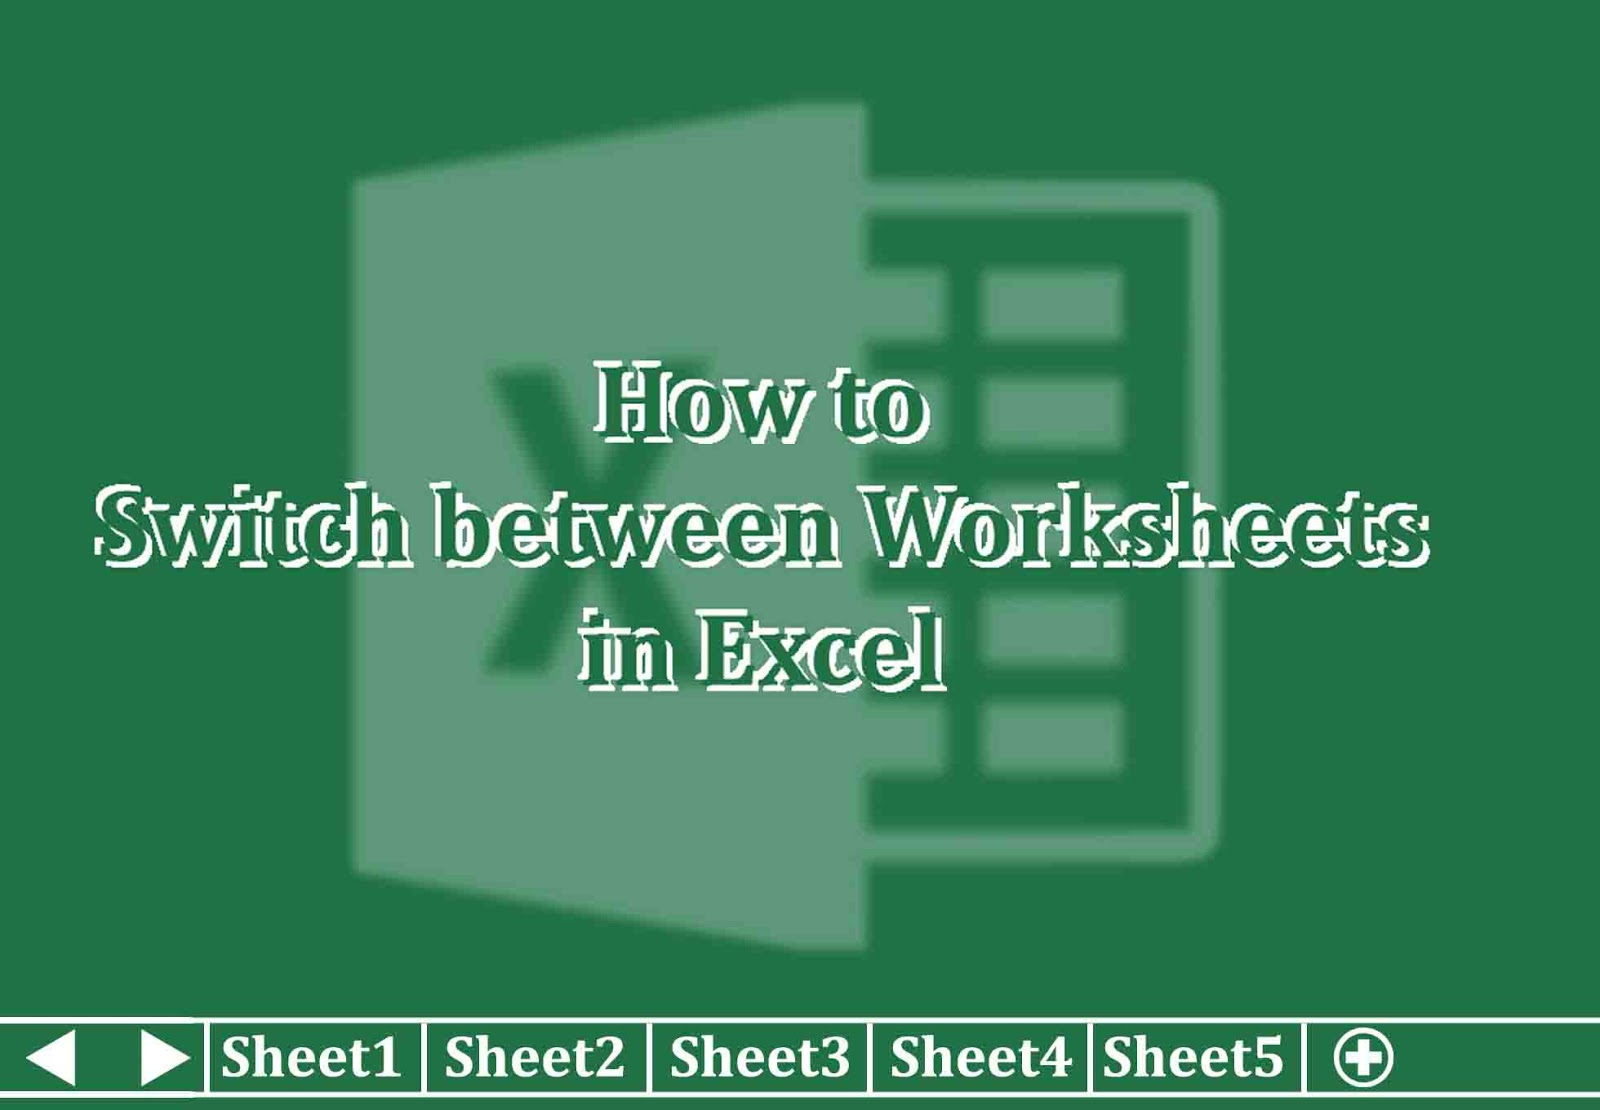 How To Switch Between Worksheets In Excel